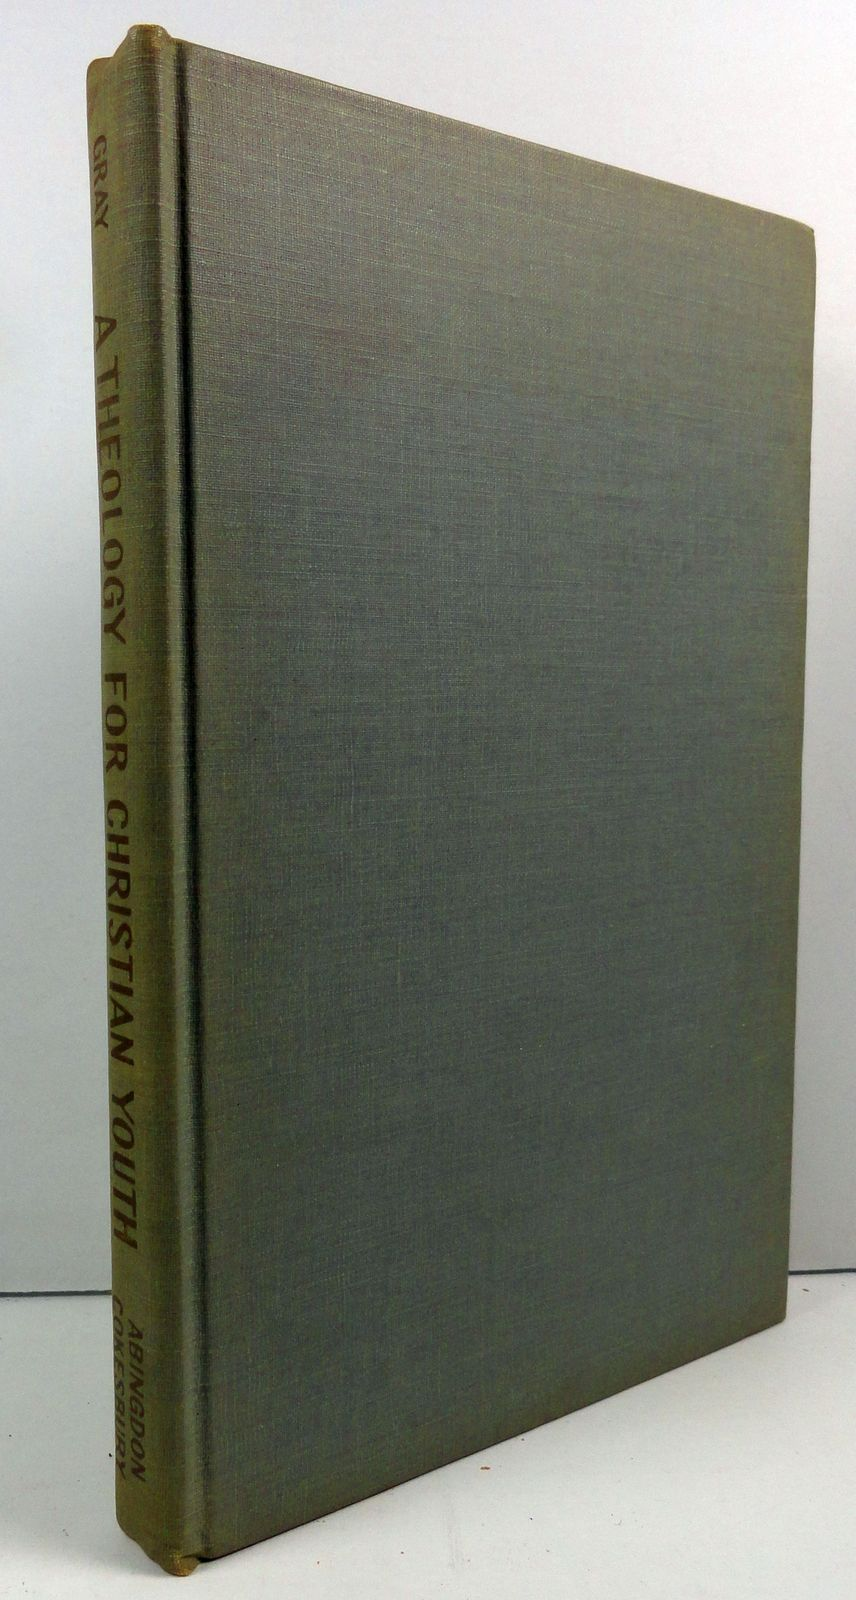 A Theology for Christian Youth by Henry David Gray 1941